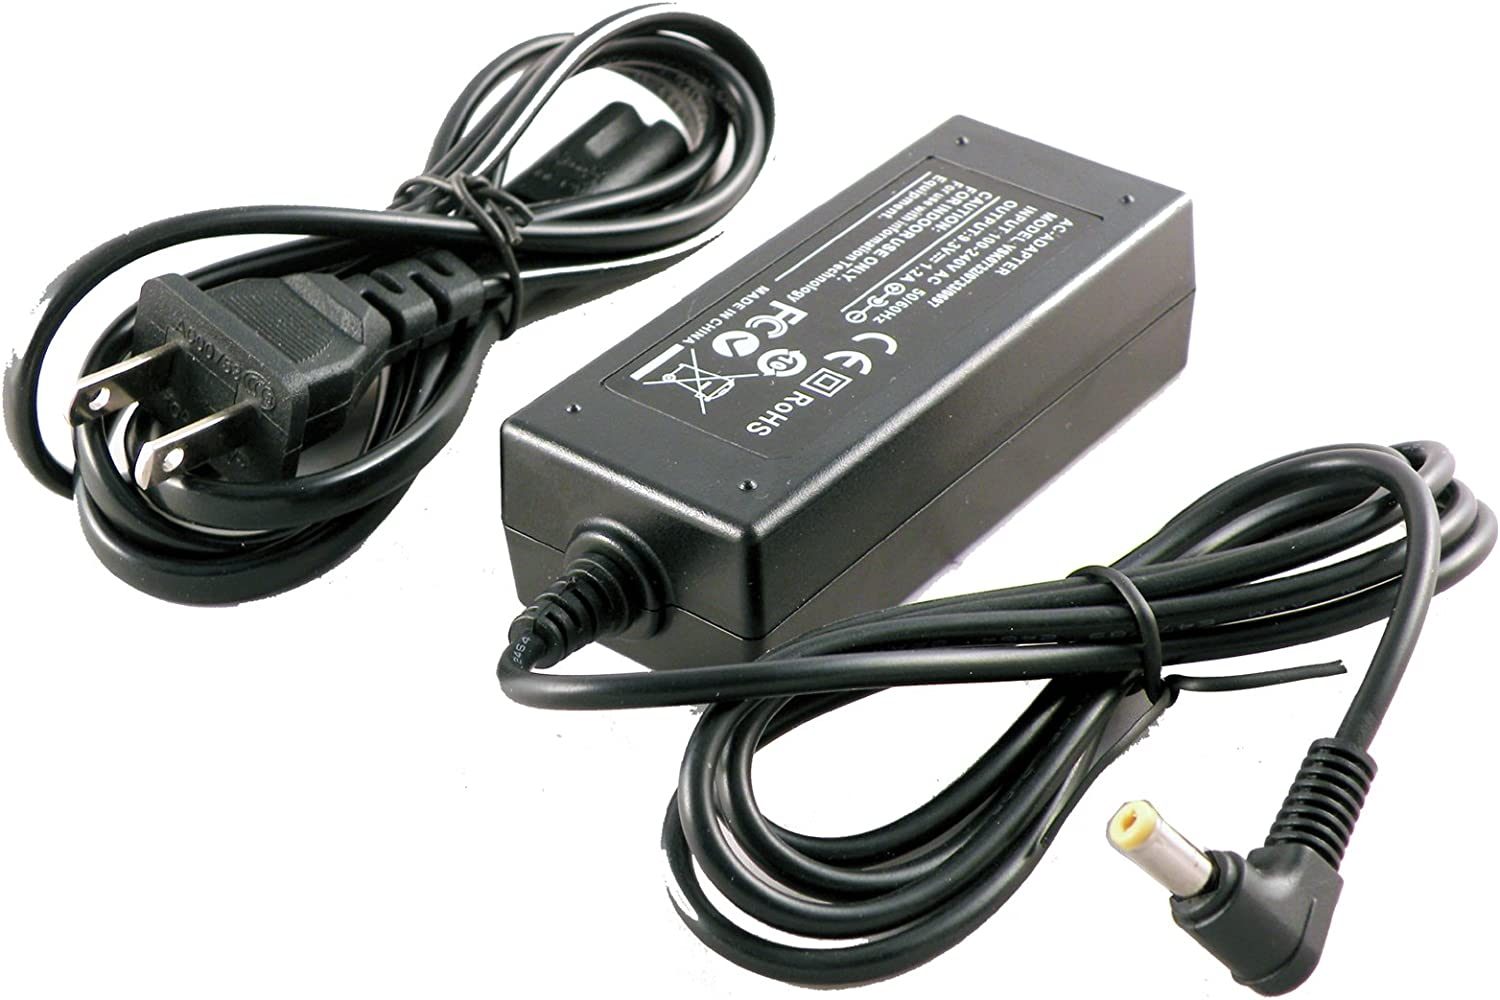 SD3 DX3 HS9 CS Power VSK0697 VSK-0697 Replacement AC Charger for Panasonic HDC-DX1 SD1 SD9 Camcorder SD7 SX5